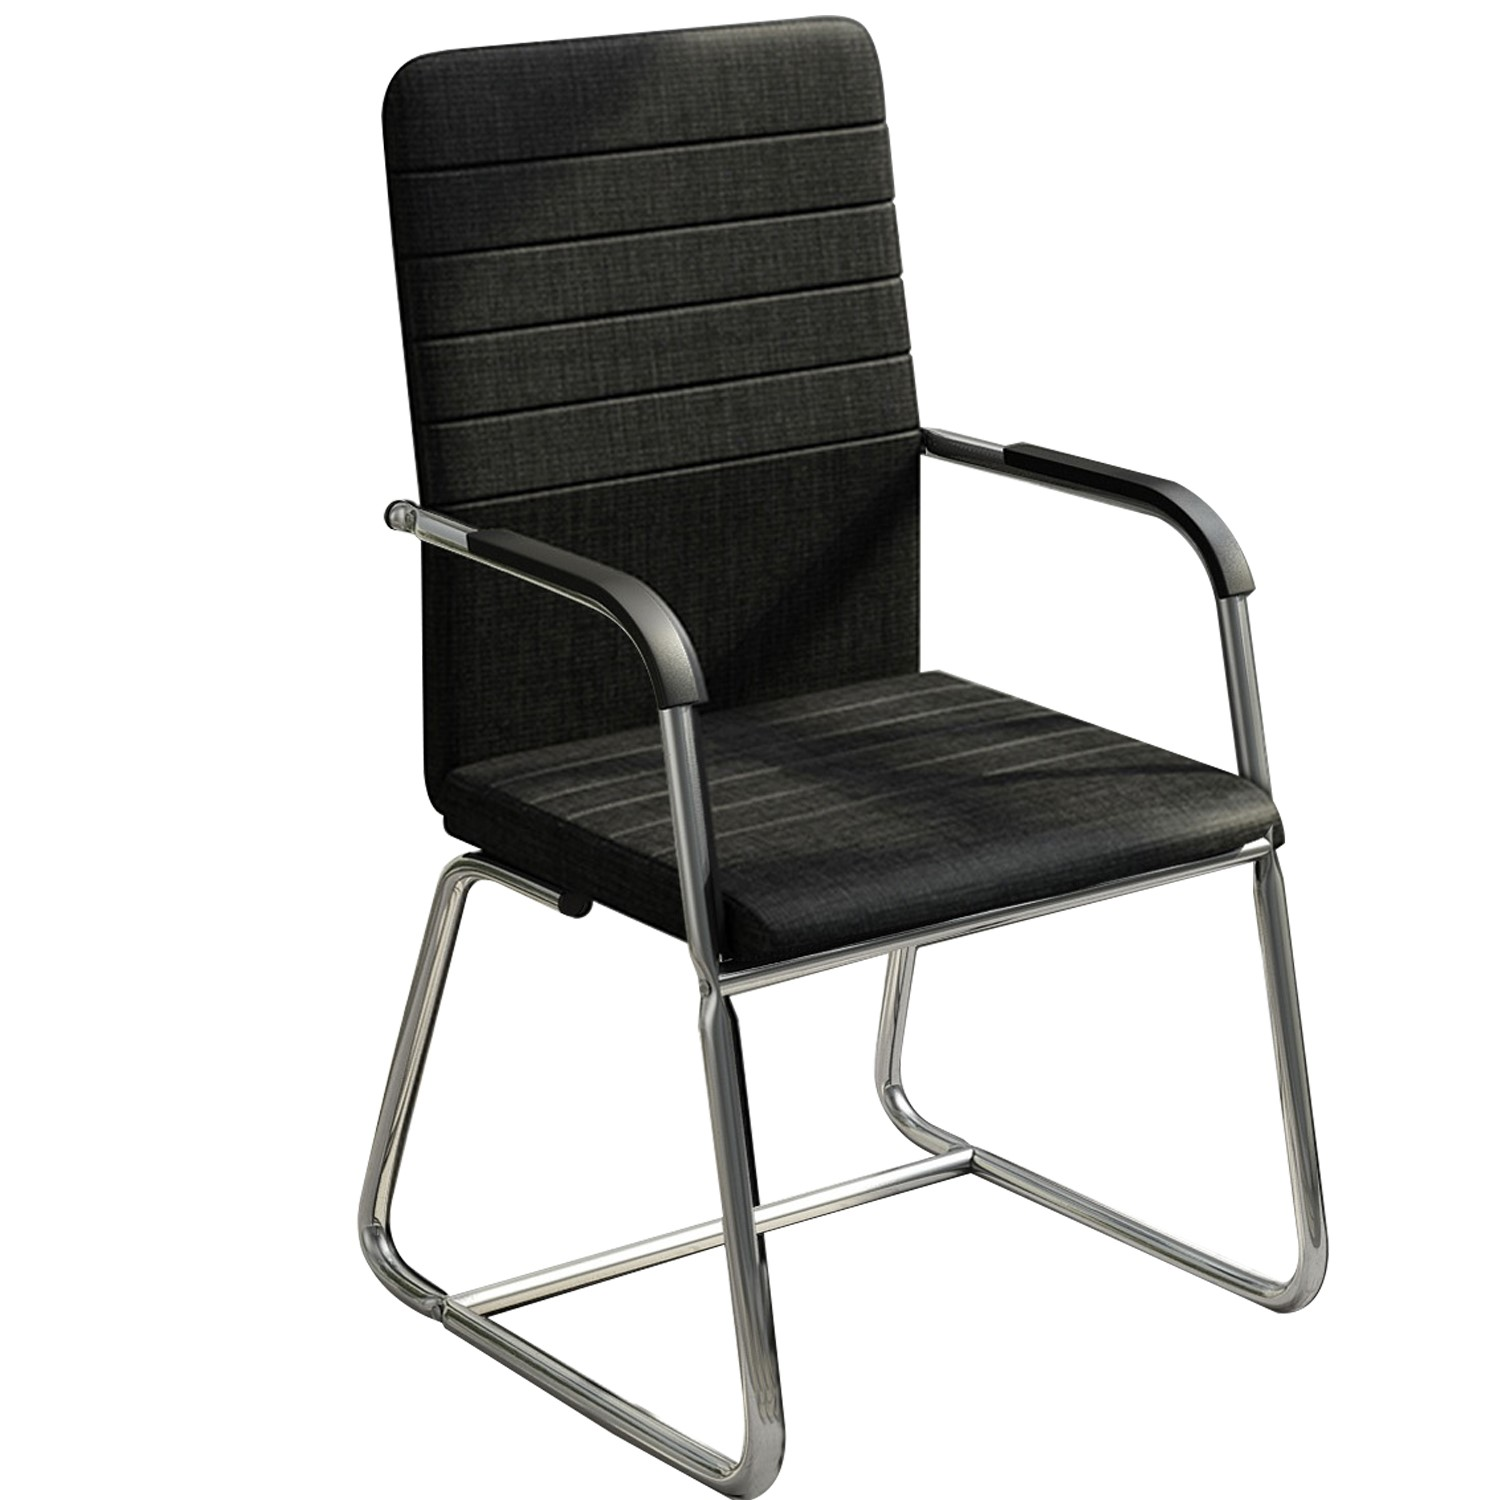 Office Chair Simple Mahjong Chair Dormitory Chair Stool Back Bow Computer Chair Home Office Conference Chair